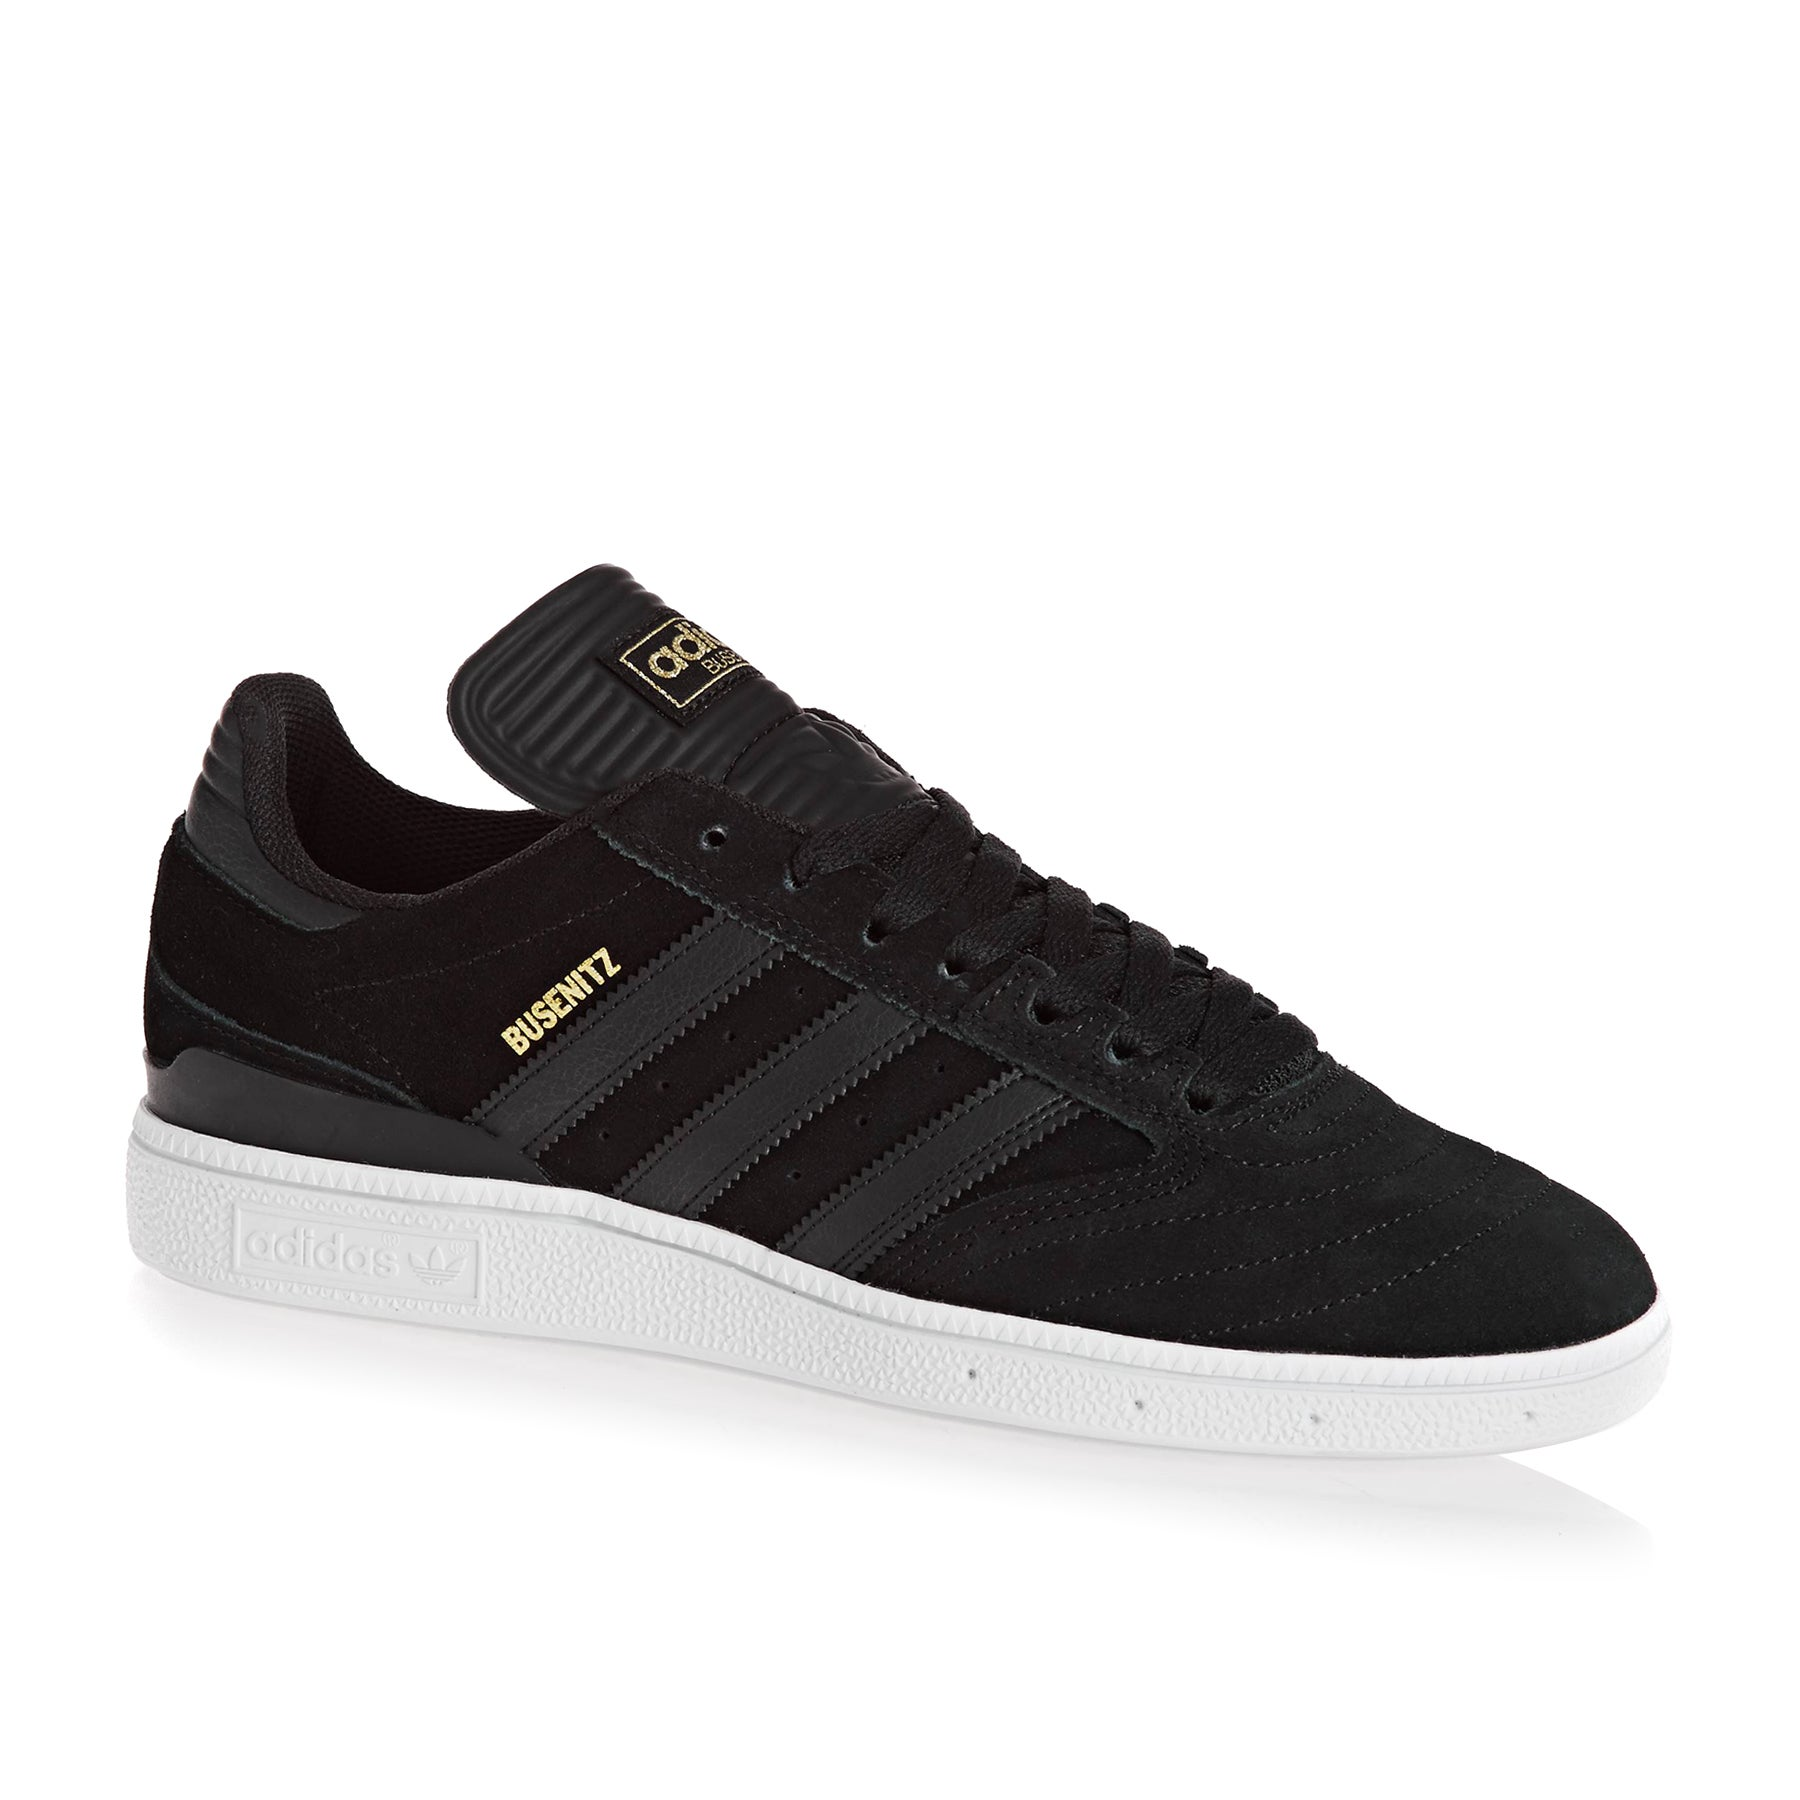 40923a6d0c5 Adidas Busenitz Shoes available from Surfdome